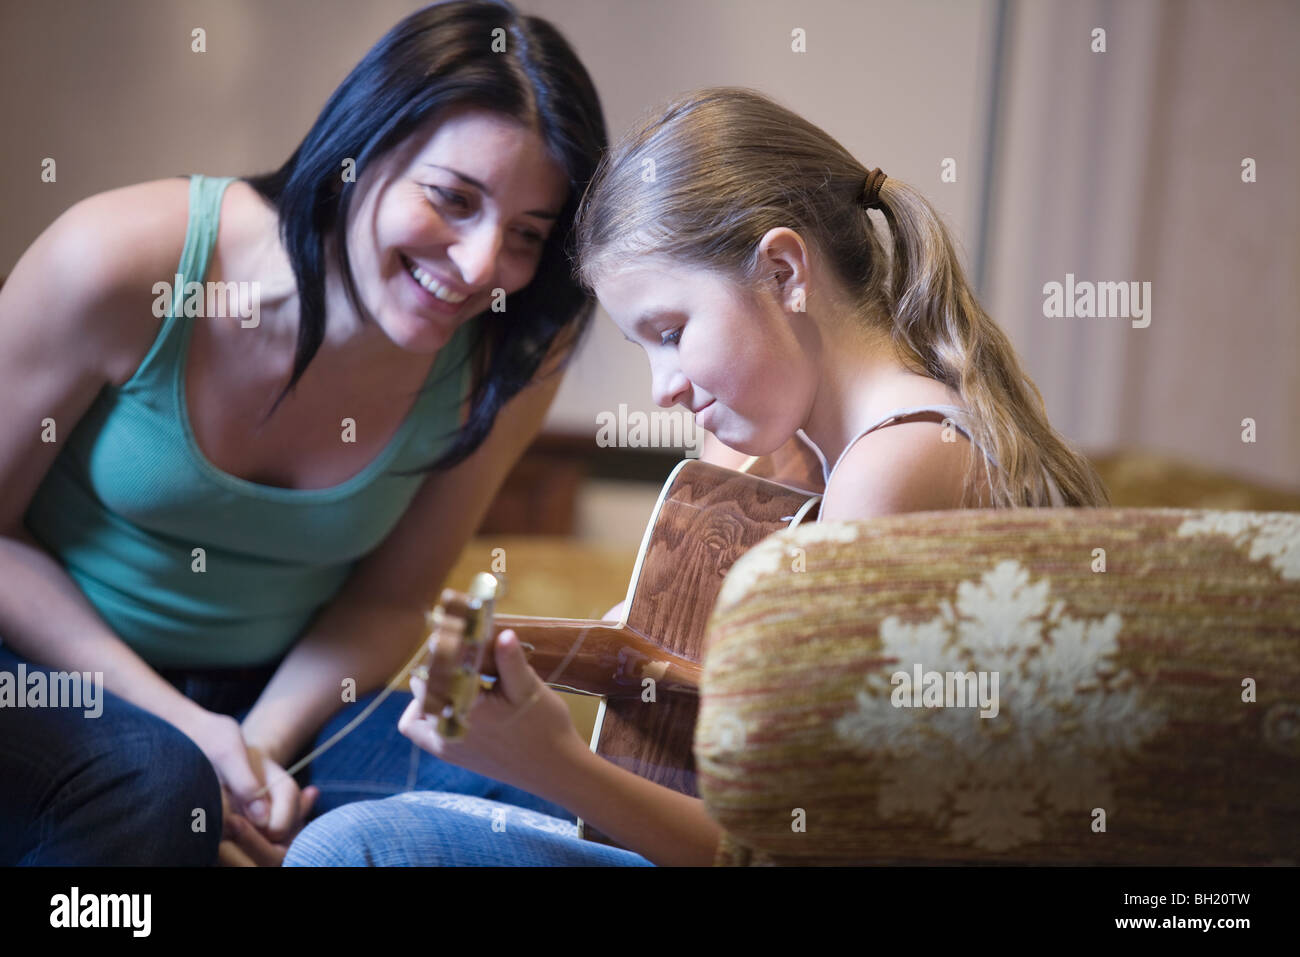 Women encourages young girl with the guitar - Stock Image